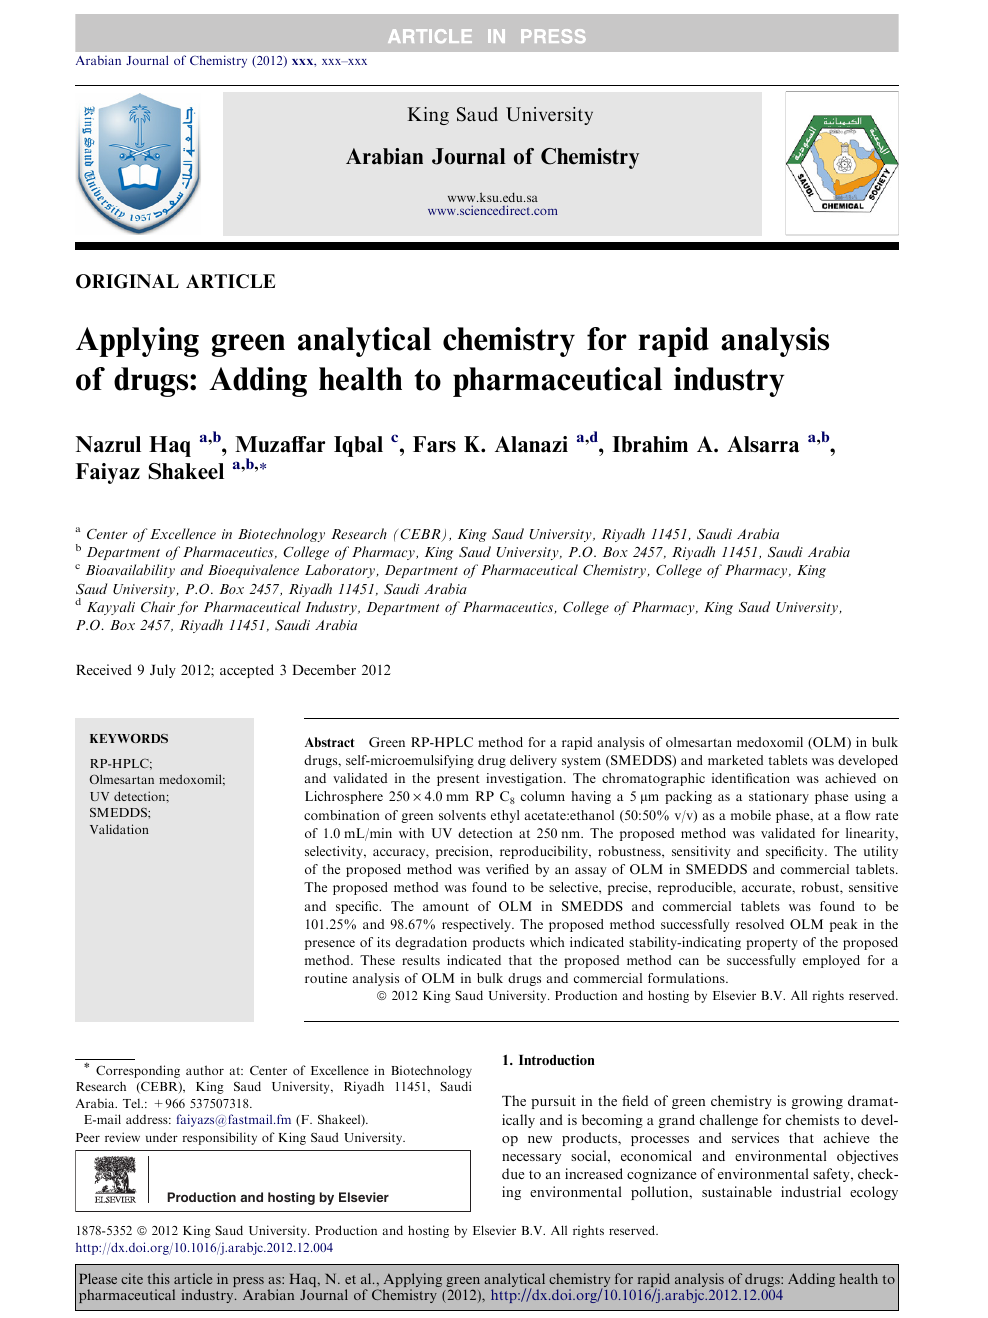 Applying green analytical chemistry for rapid analysis of